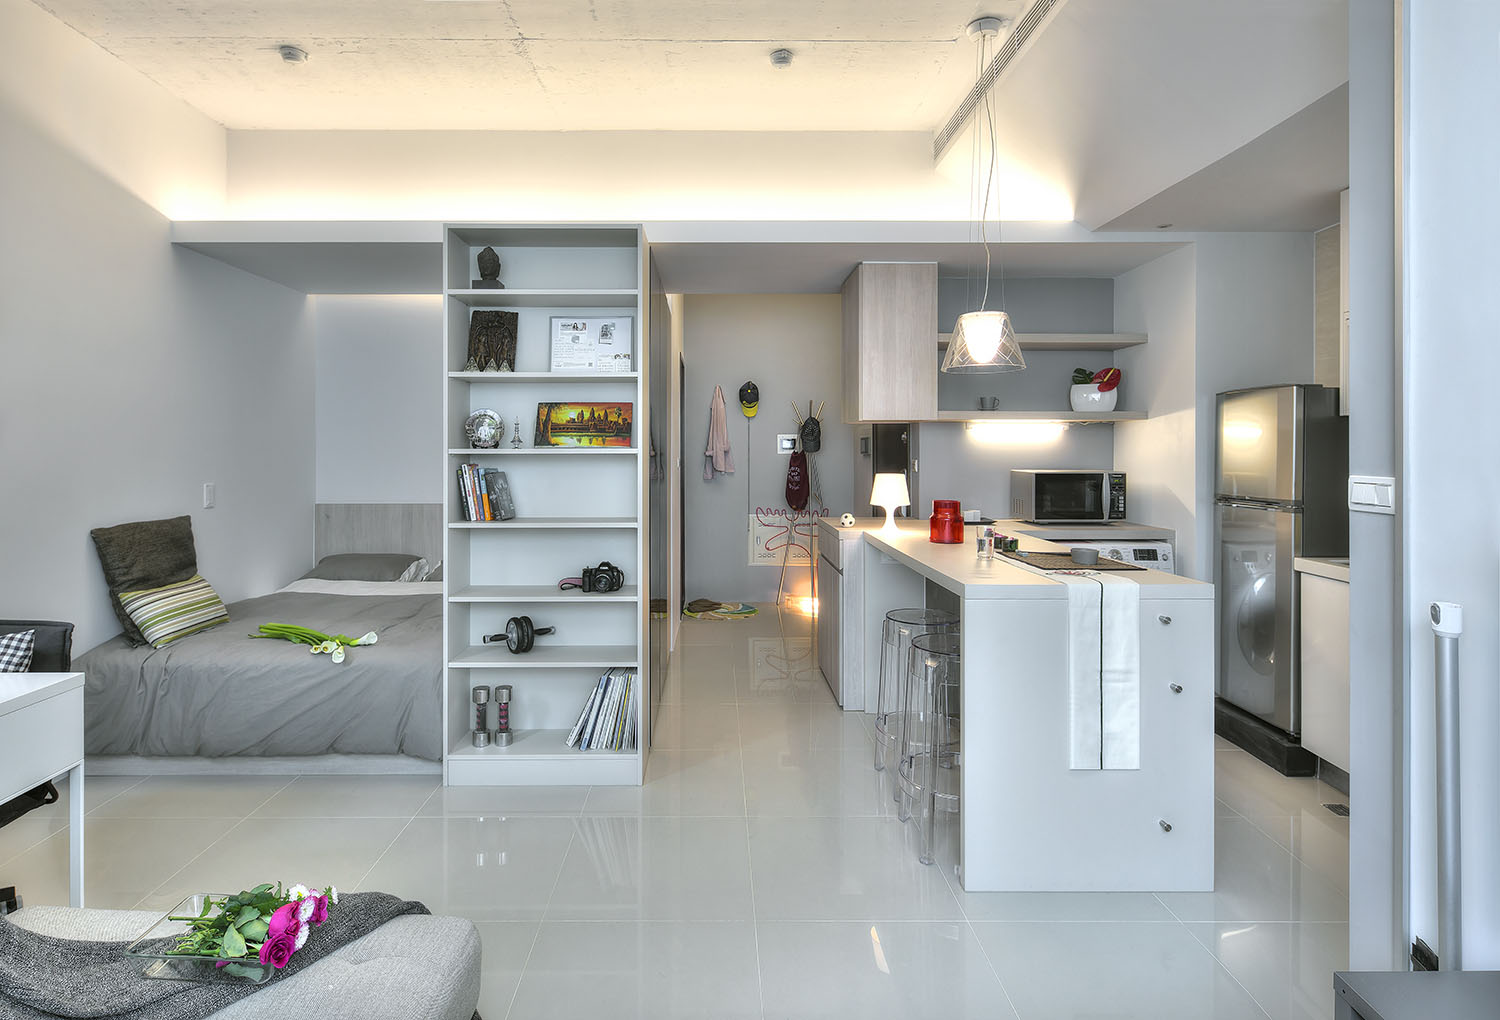 Basement Studio Apartment Decorating small studio apartments with beautiful design. miro studio